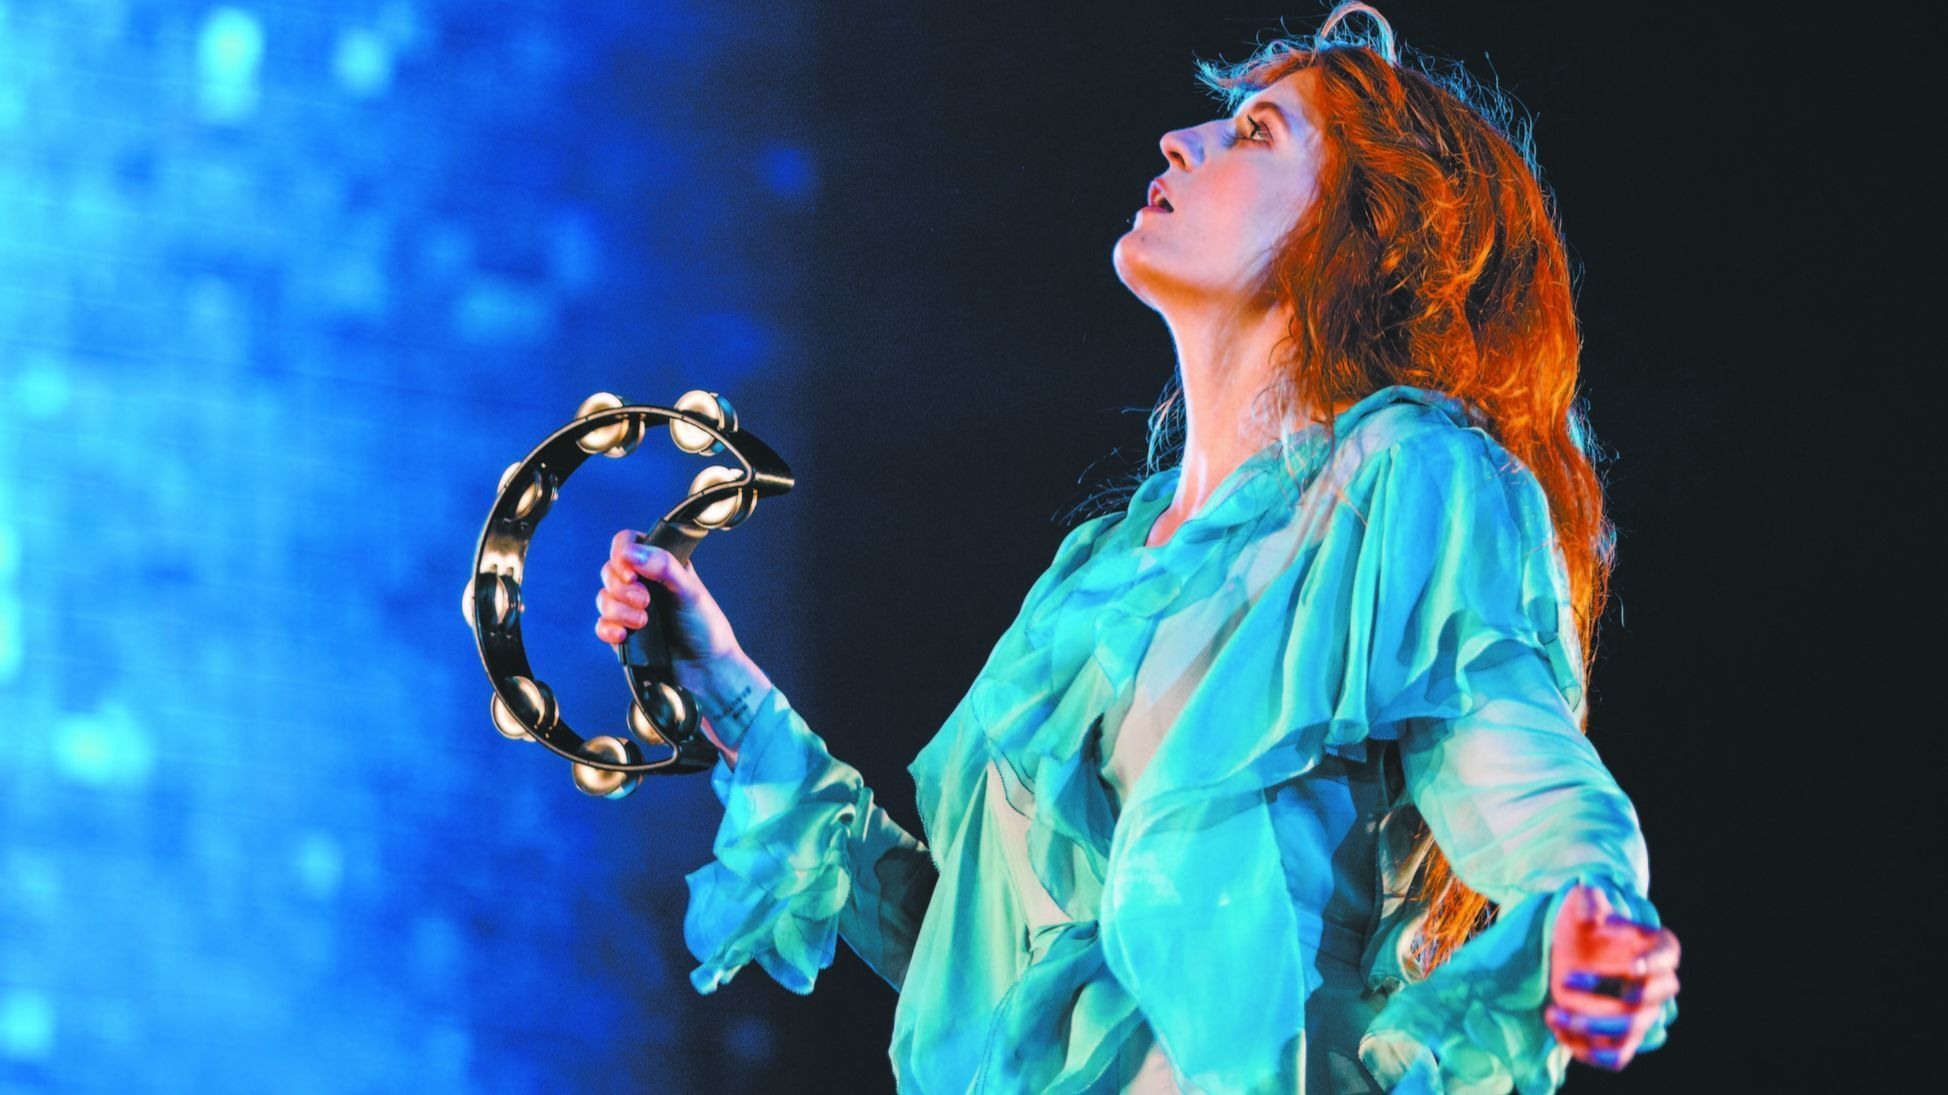 Ticket alert: Florence and the Machine at AmericanAirlines Arena June 9